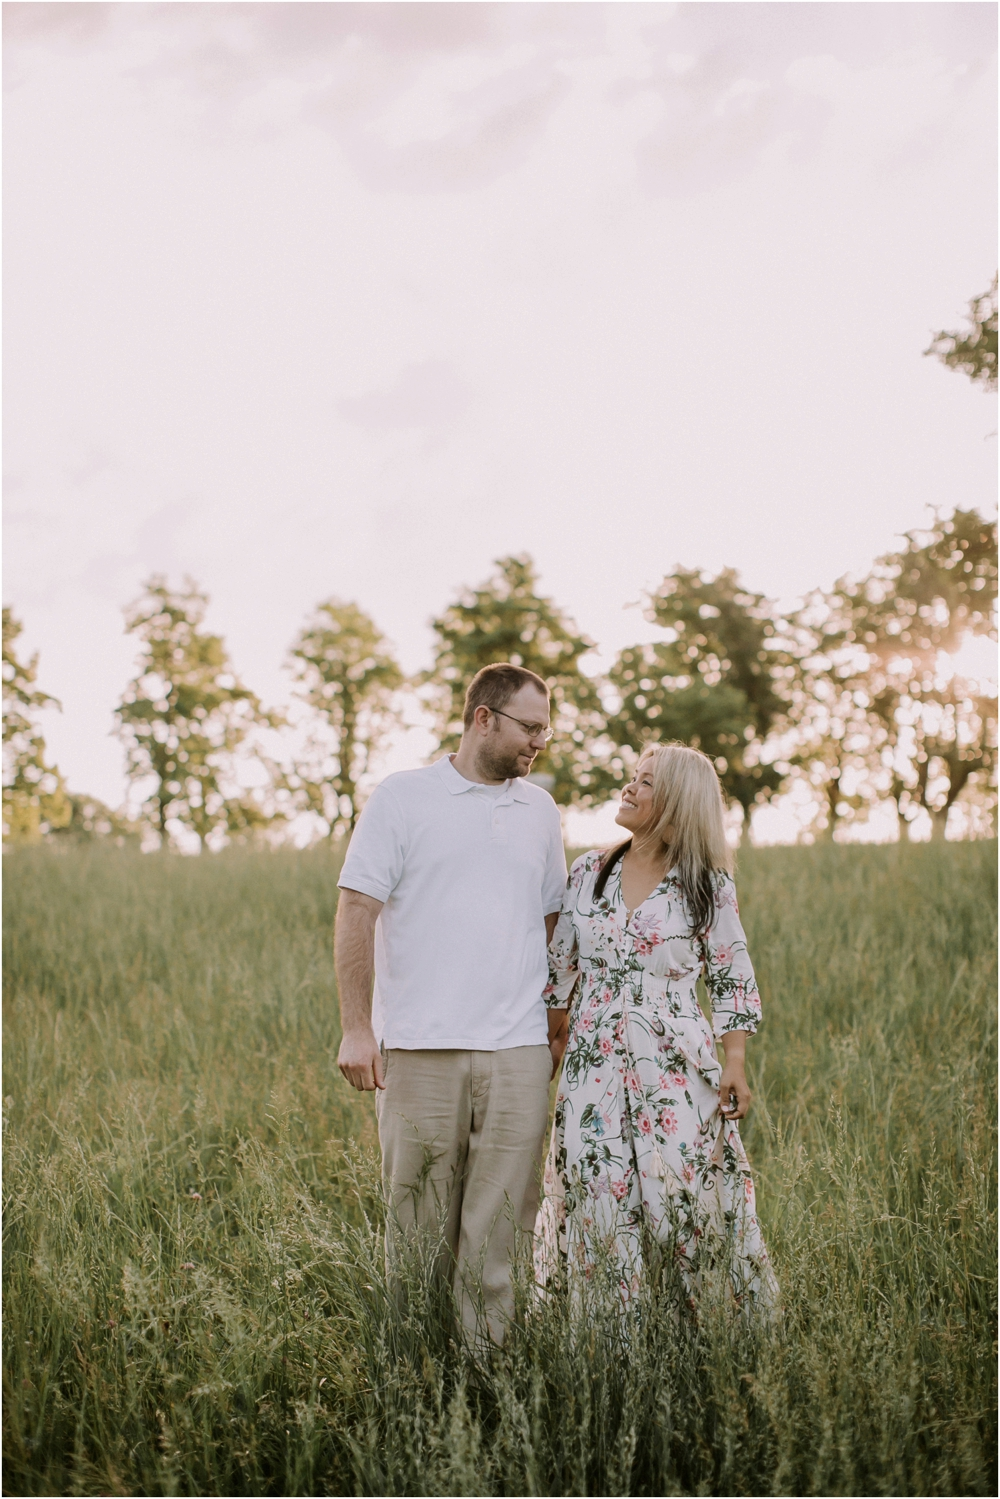 ten year wedding anniversary photography at shawnee mission park